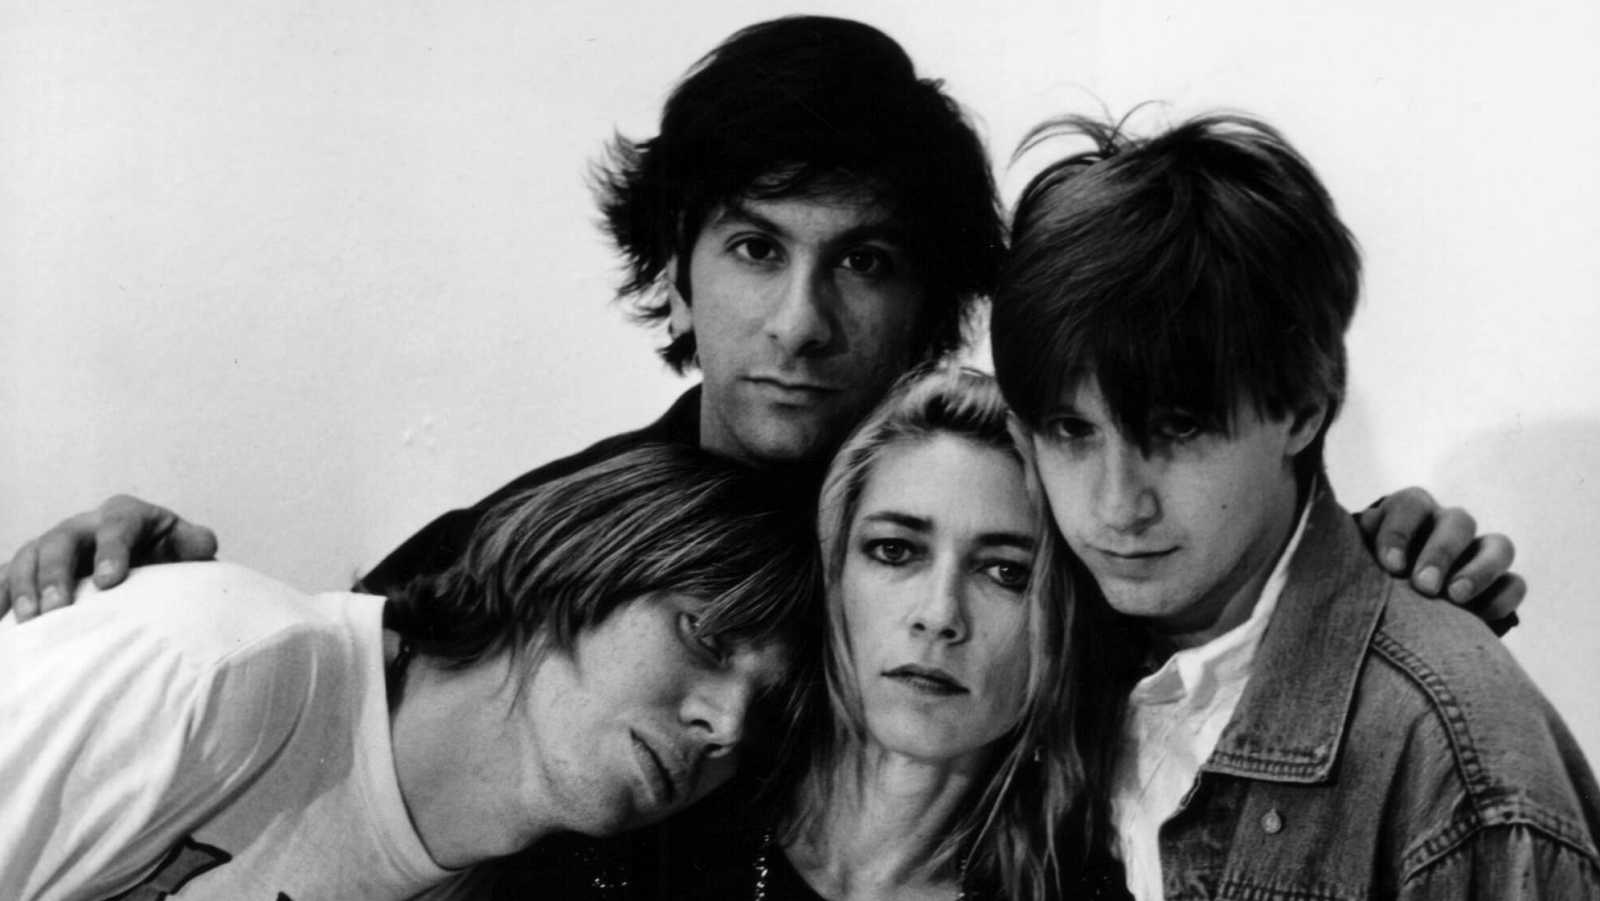 Top Gus Extra - Sonic Youth - Escuchar ahora